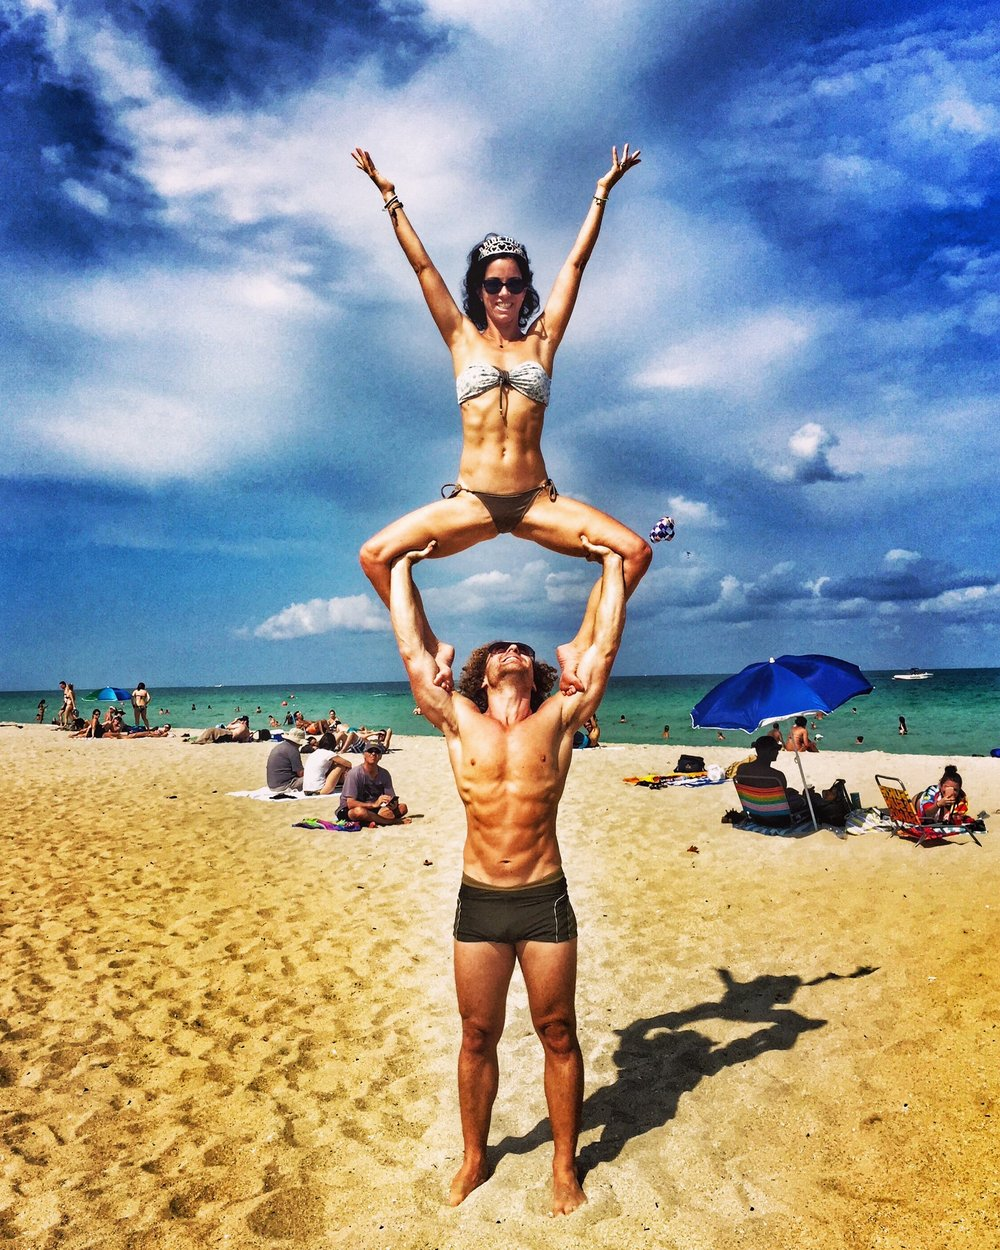 AcroYoga at the Beach 4